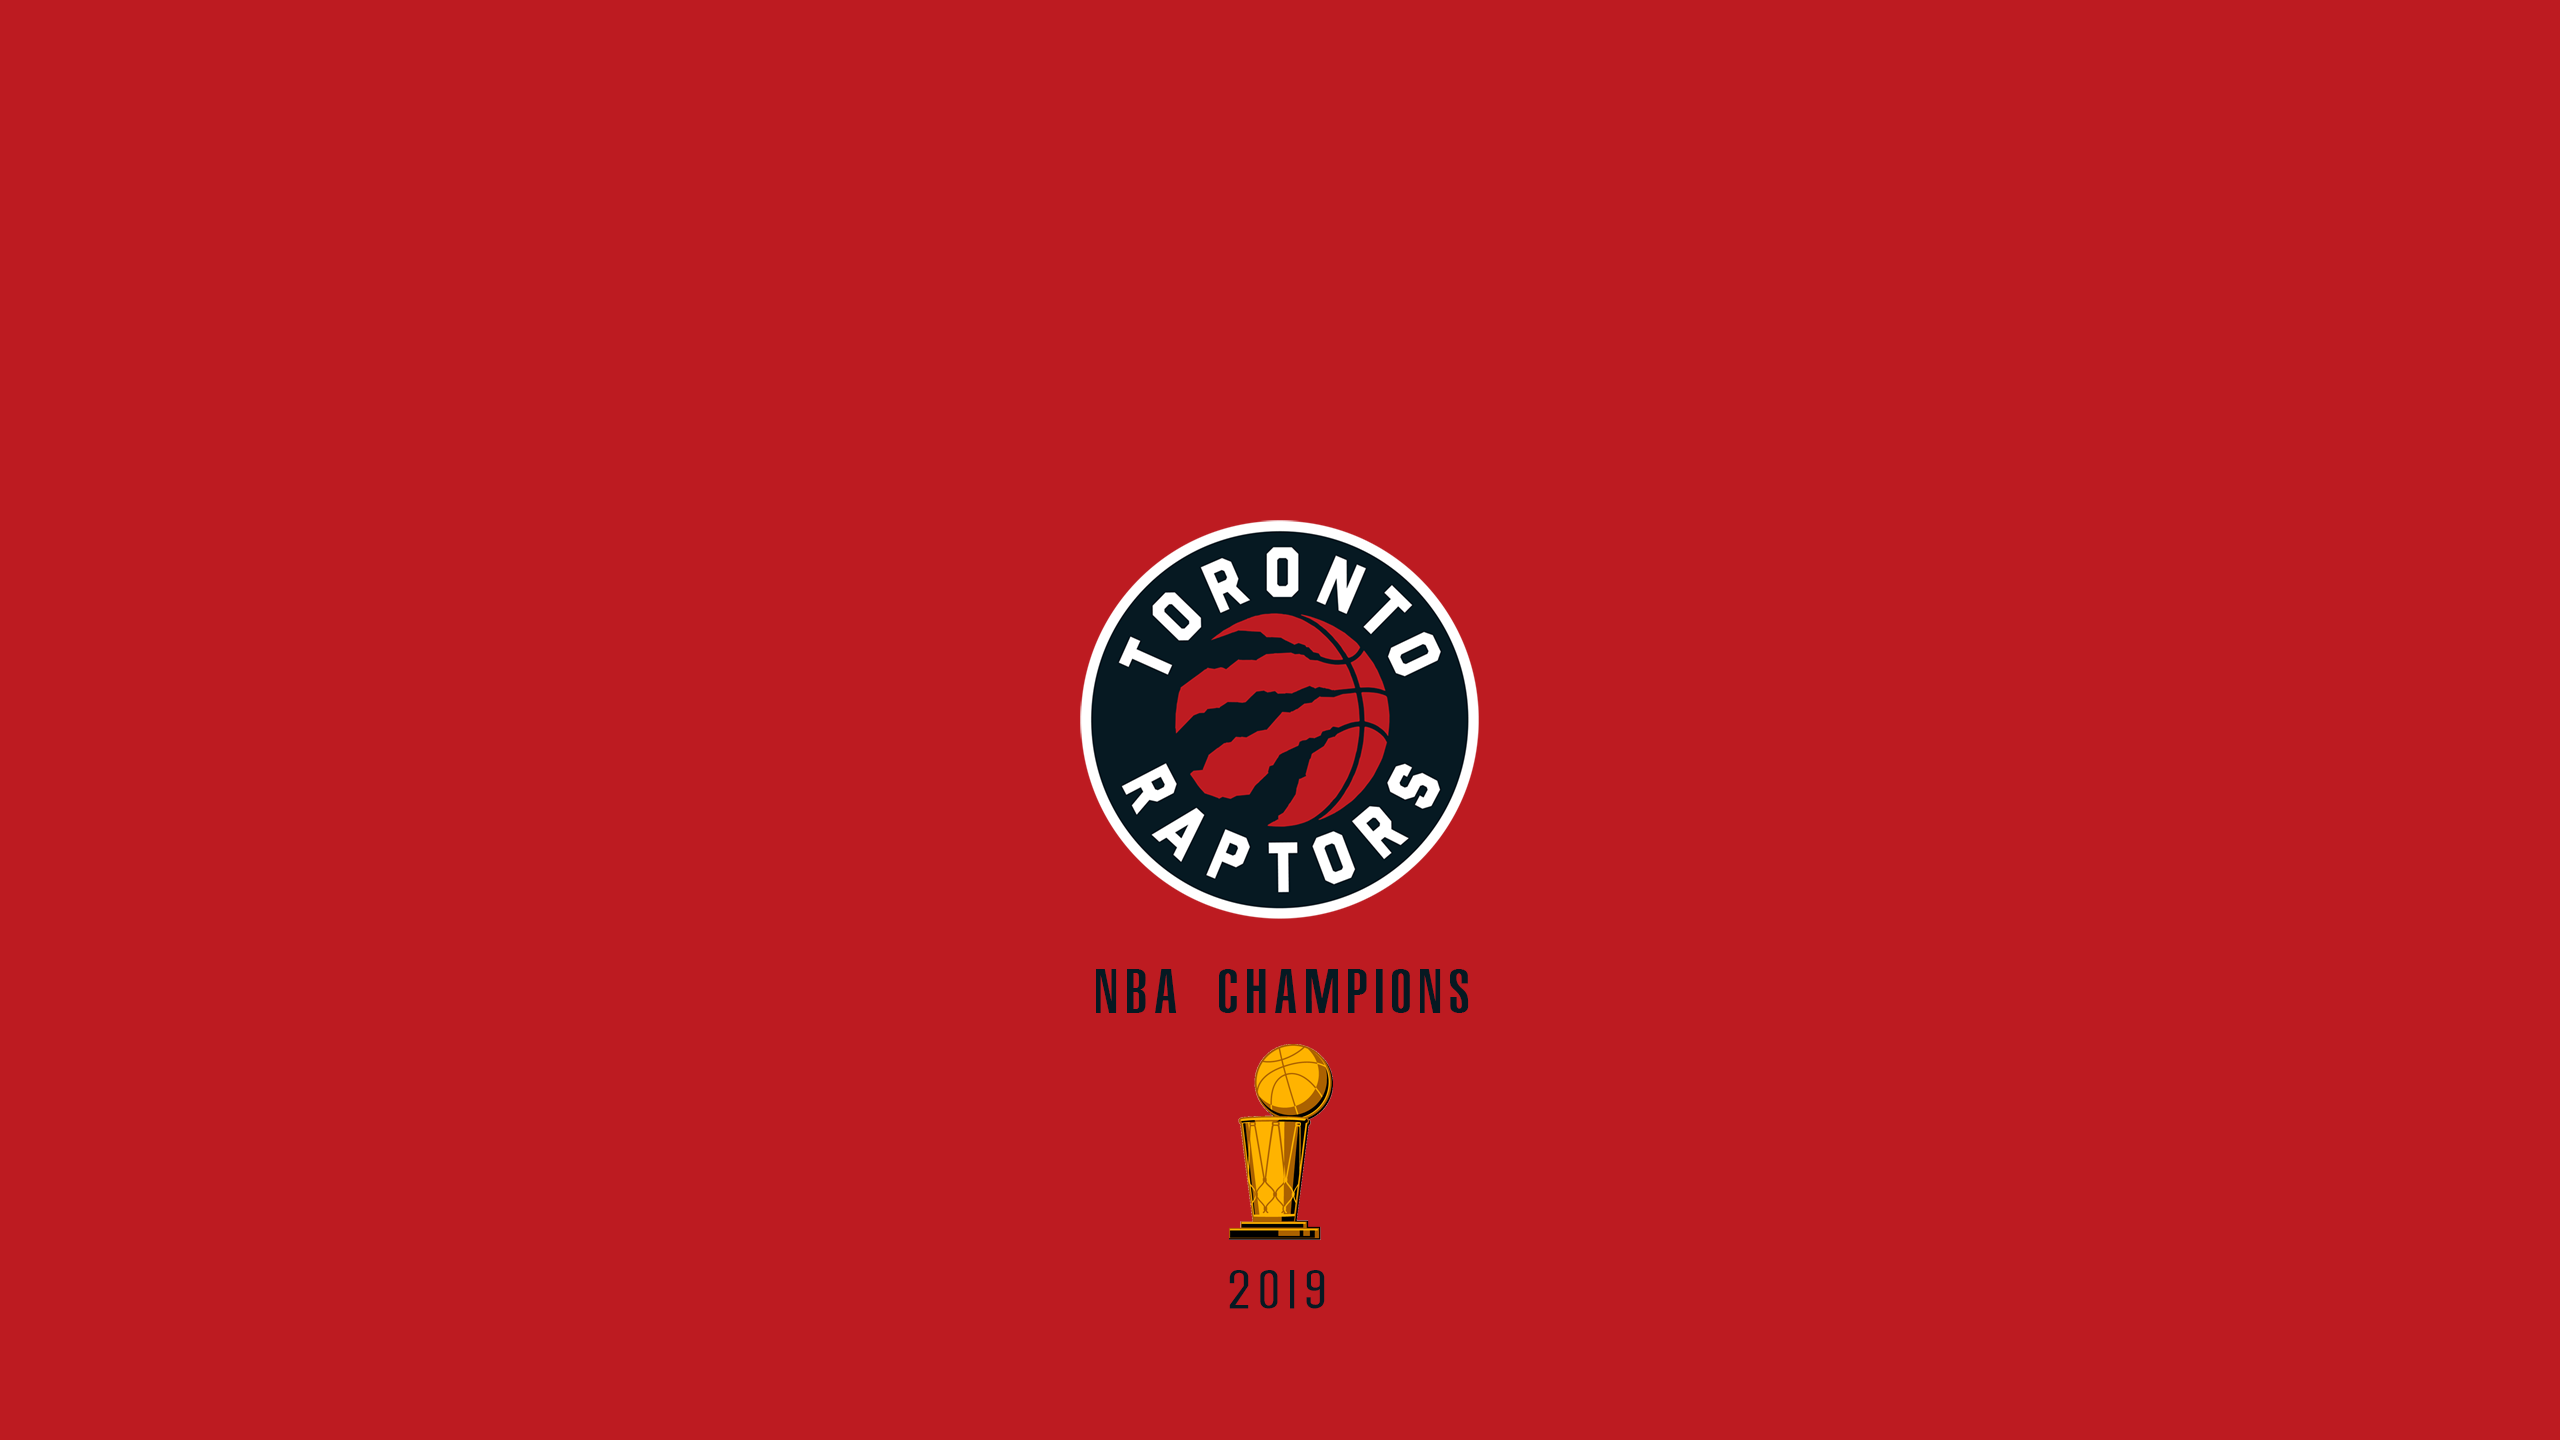 Toronto Raptors - NBA Champs